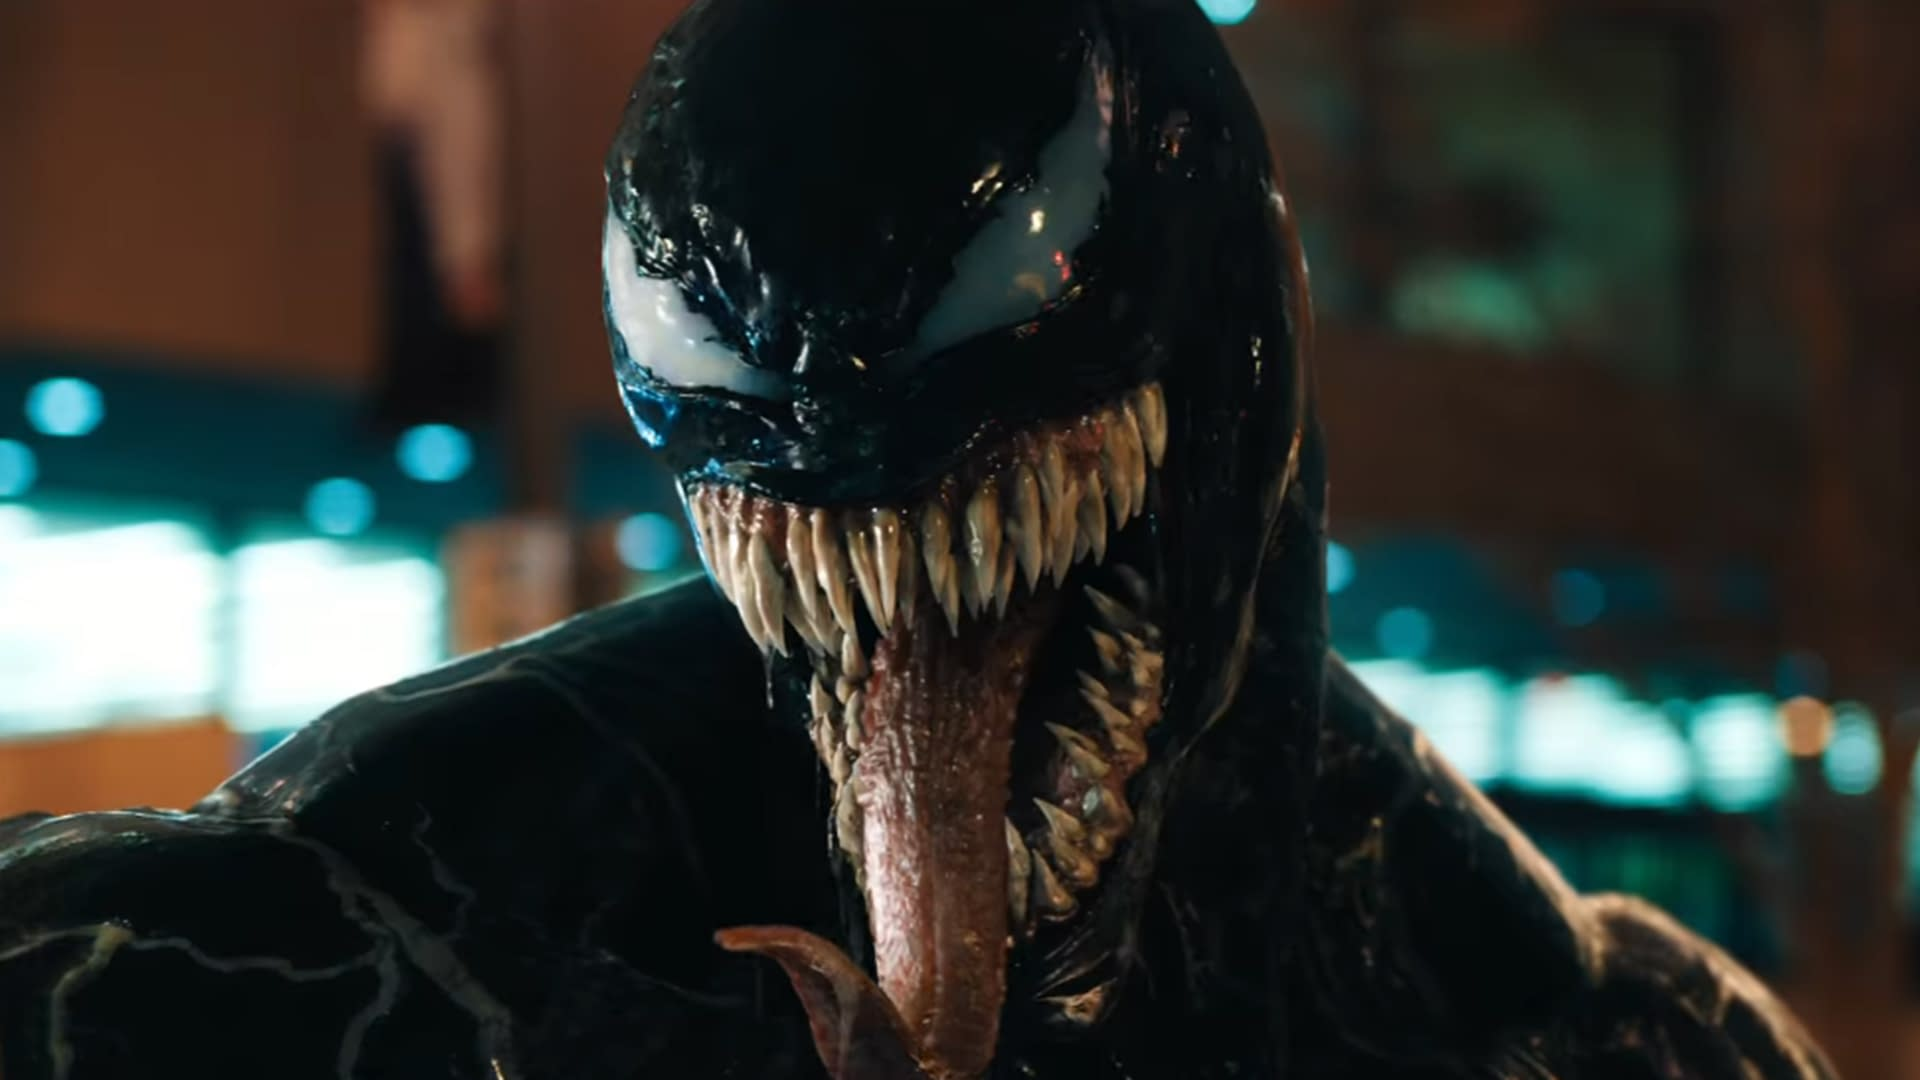 Venom Director Promises Grounded, Tonally Different Comic Book Film